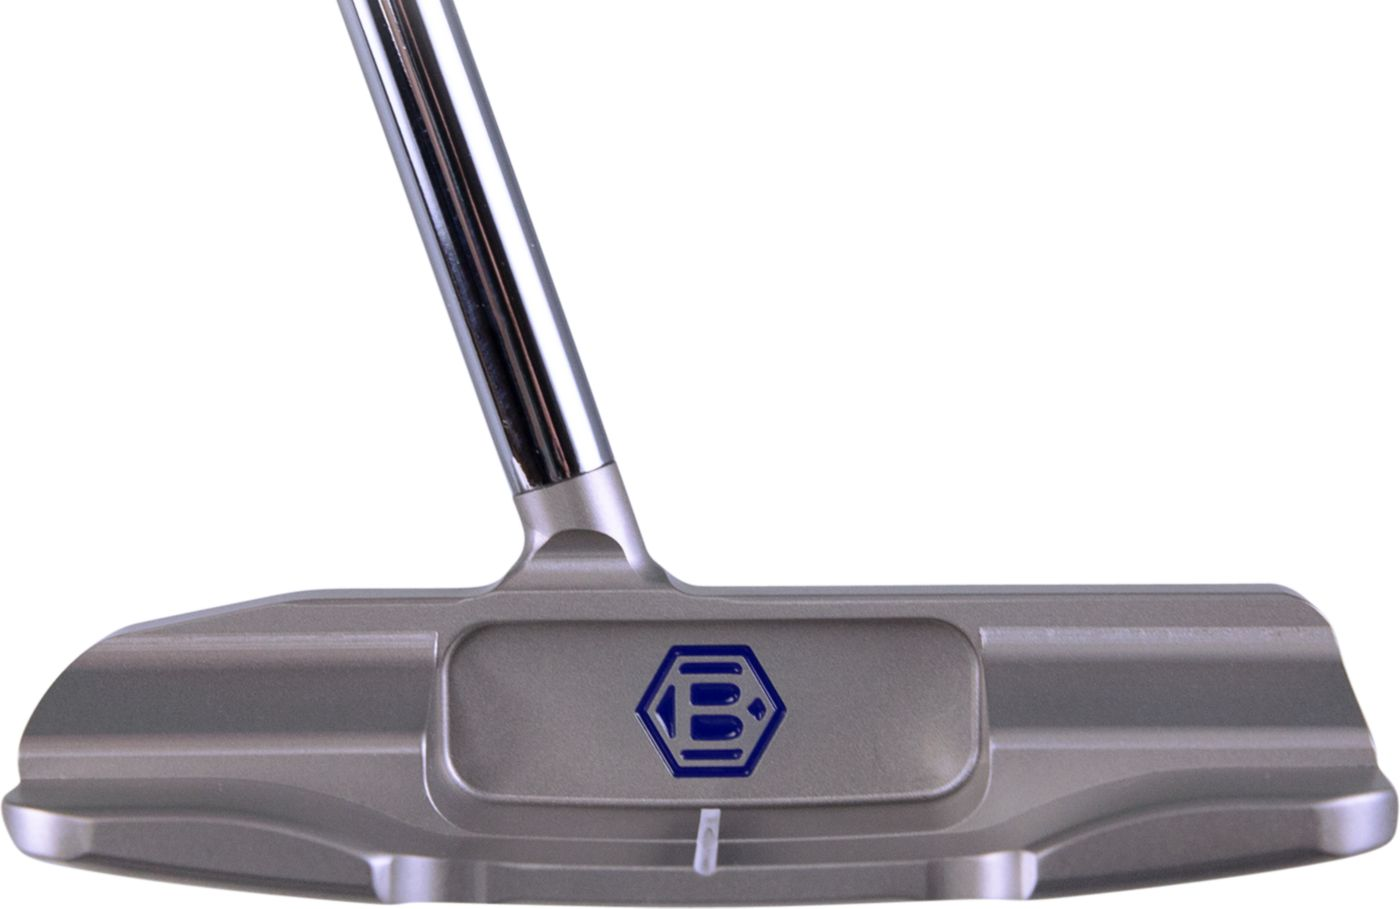 Bettinardi 2019 Studio Stock 28 Slotback Center Shafted Putter